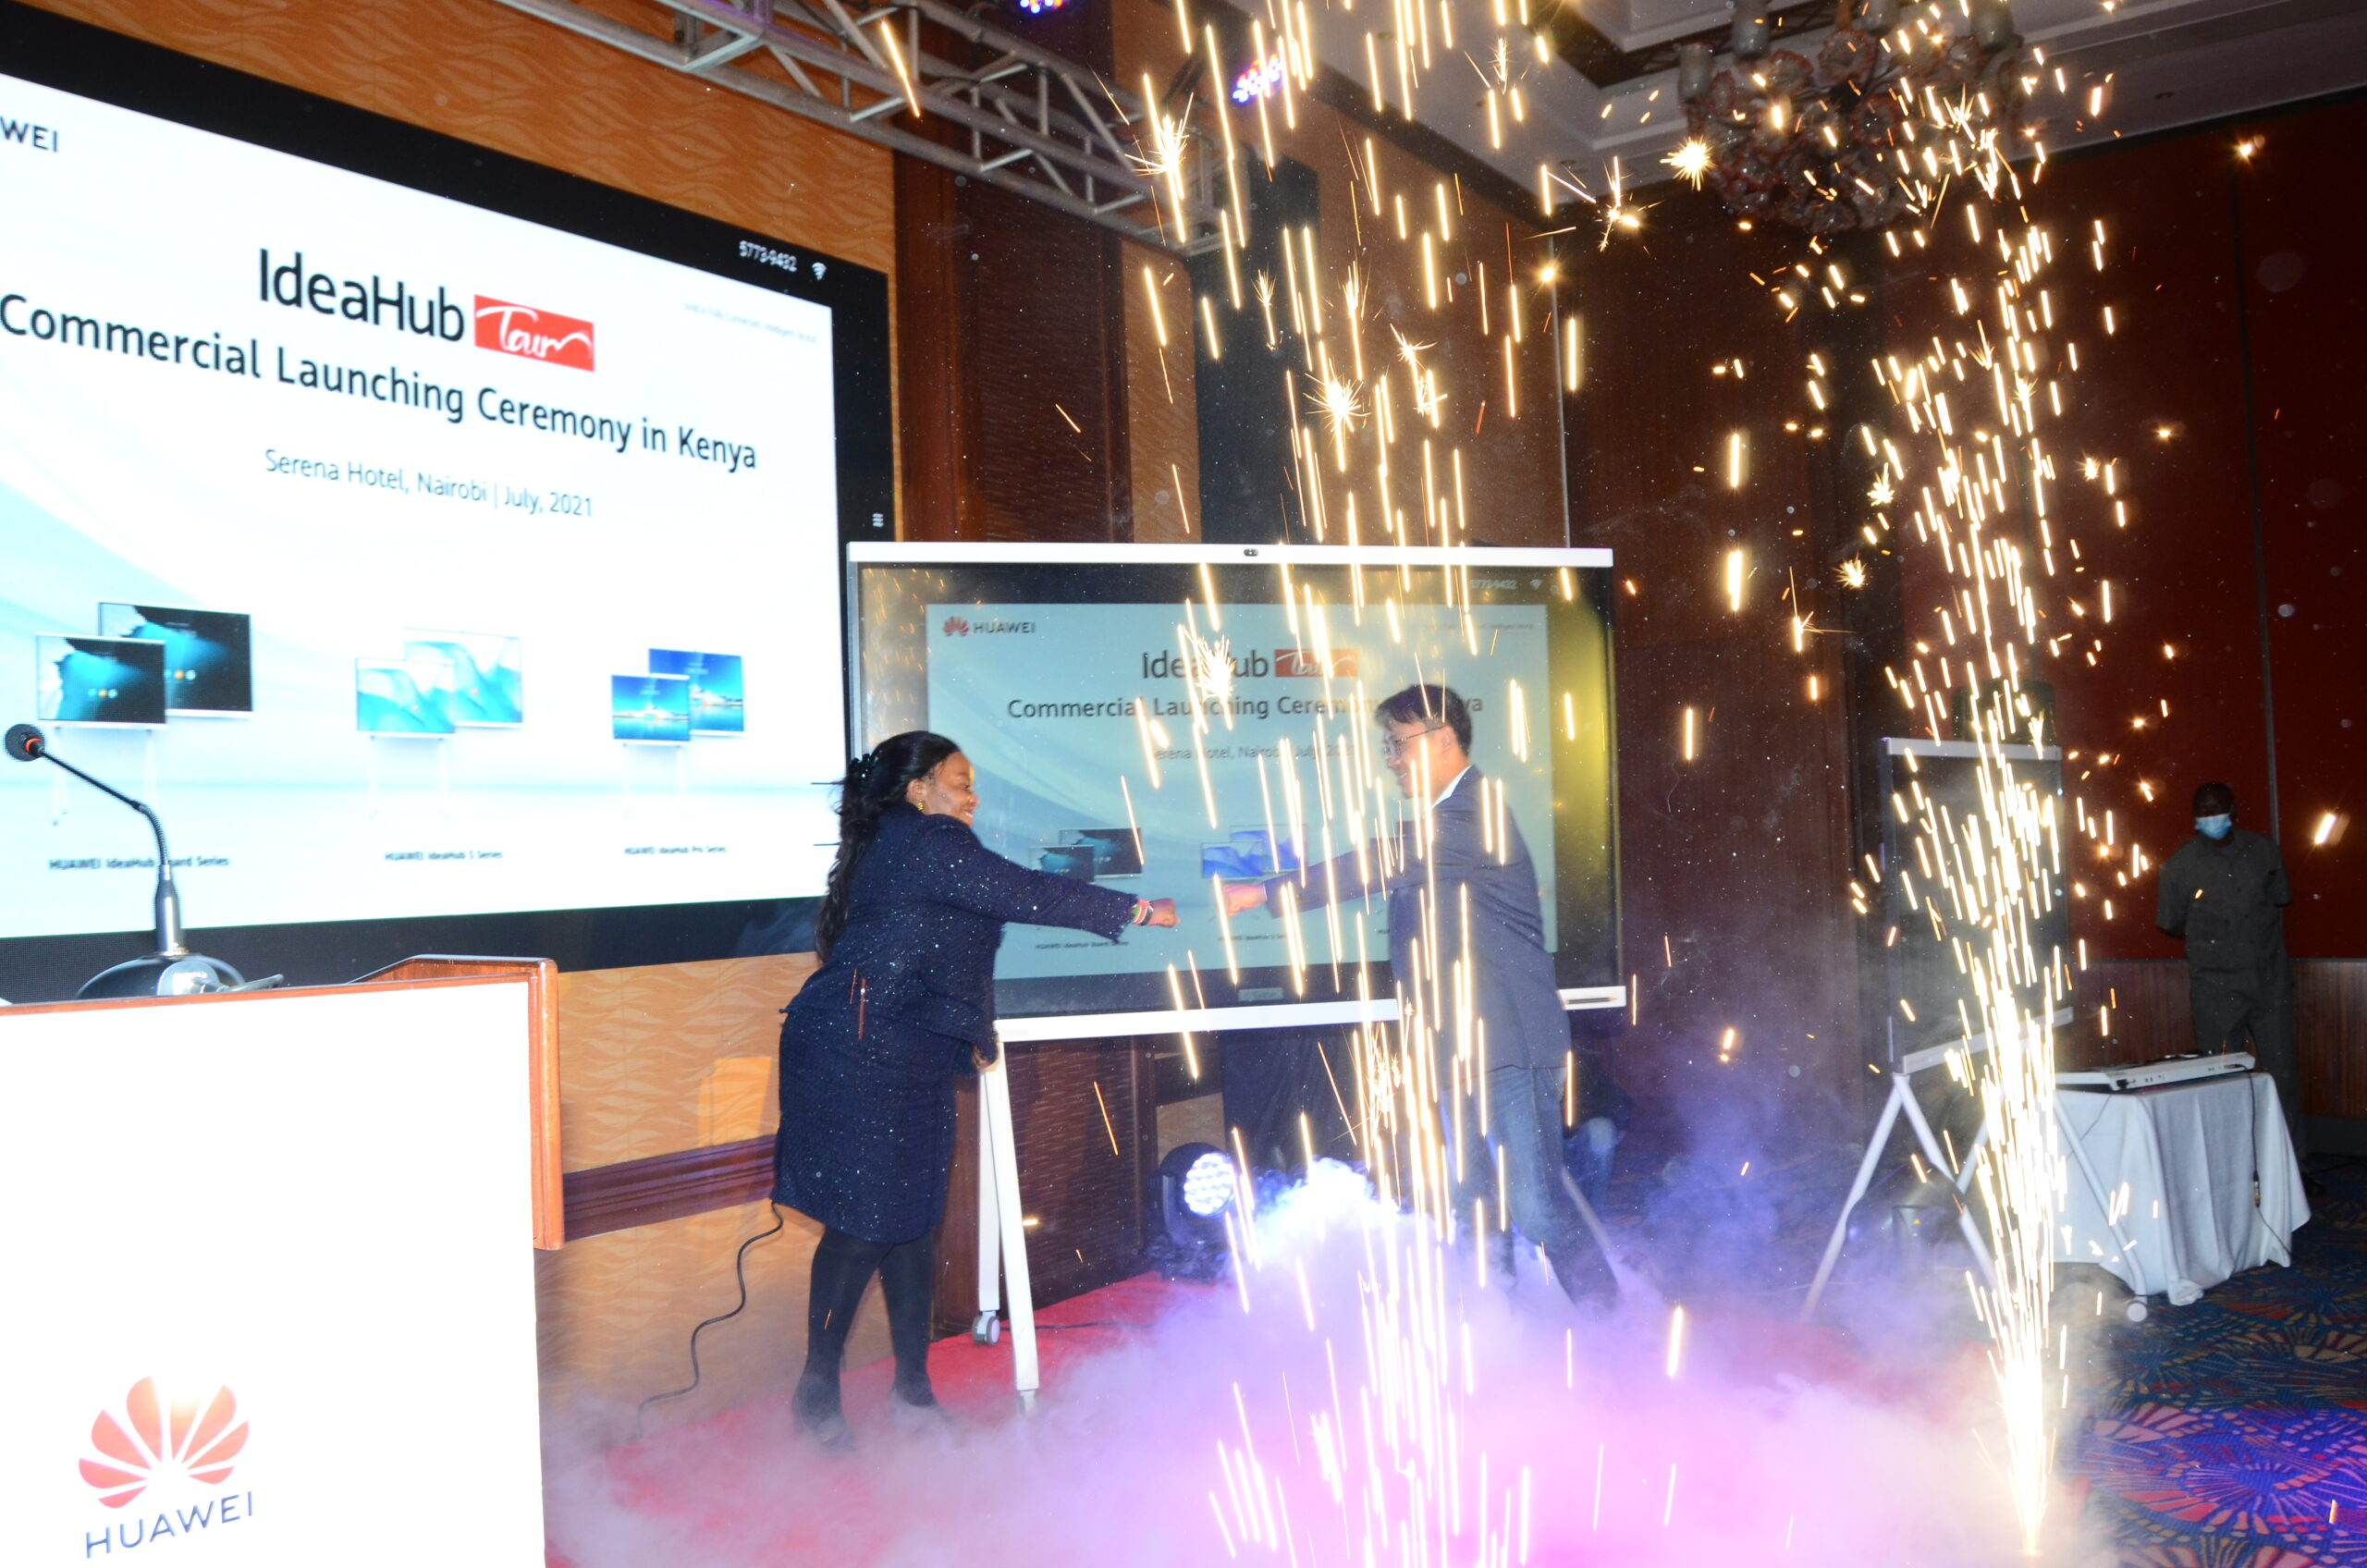 HUAWEI Starts IdeaHub for Smart Office and Education Needs